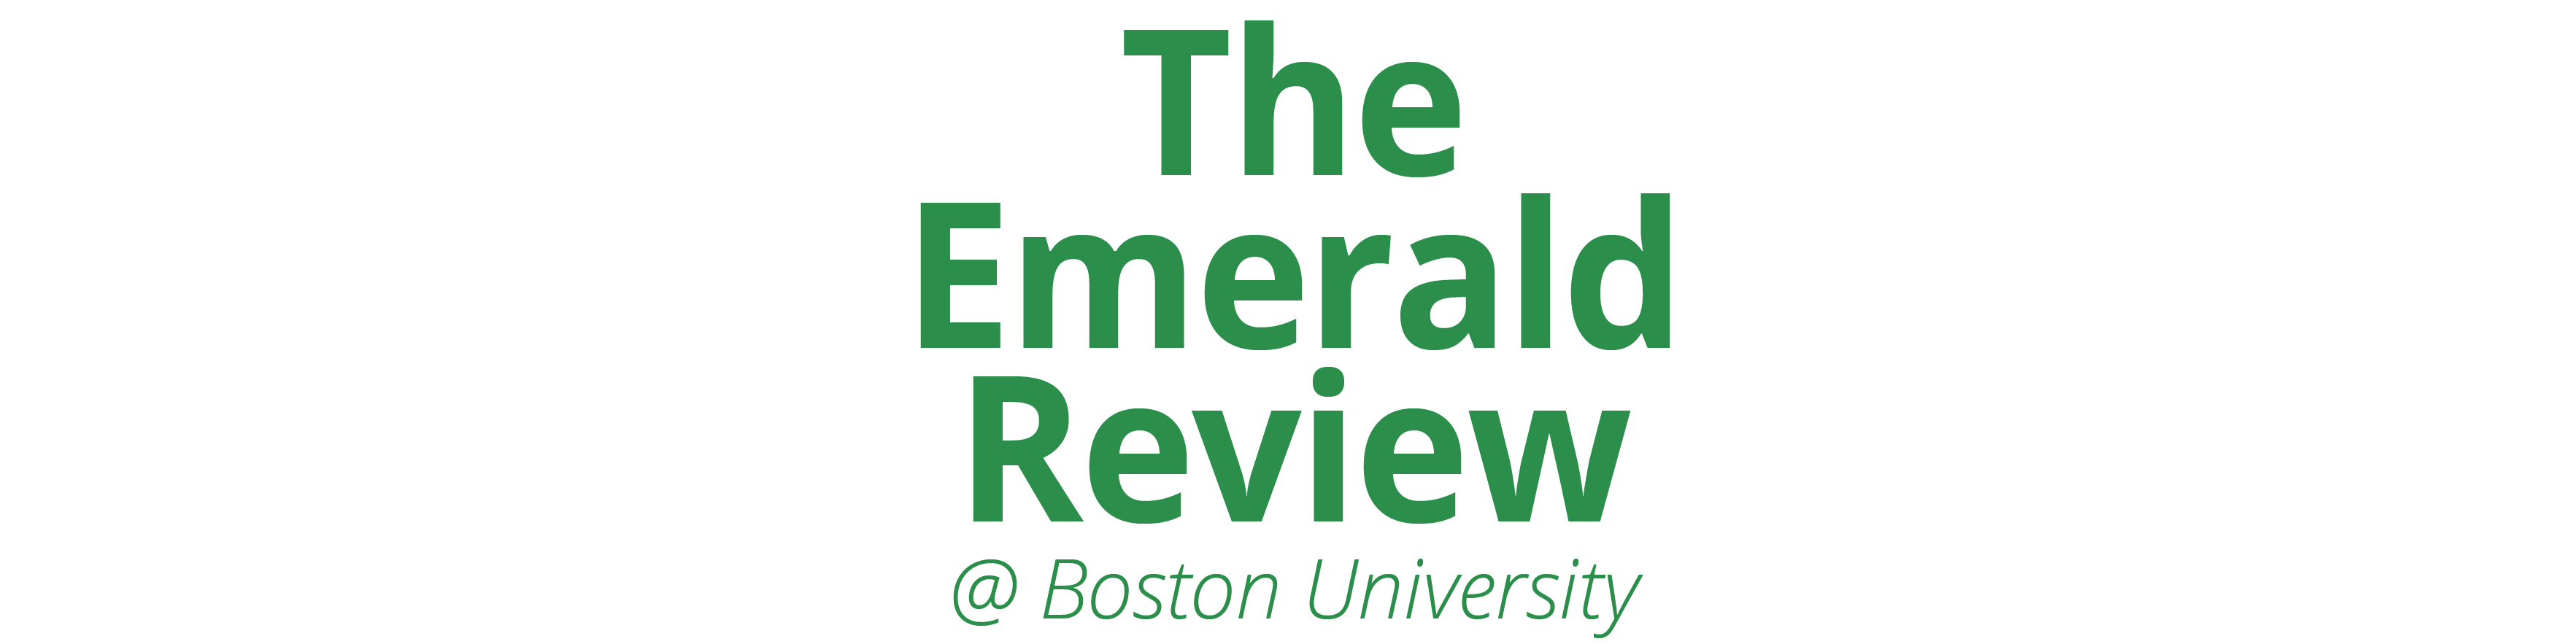 The Emerald Review